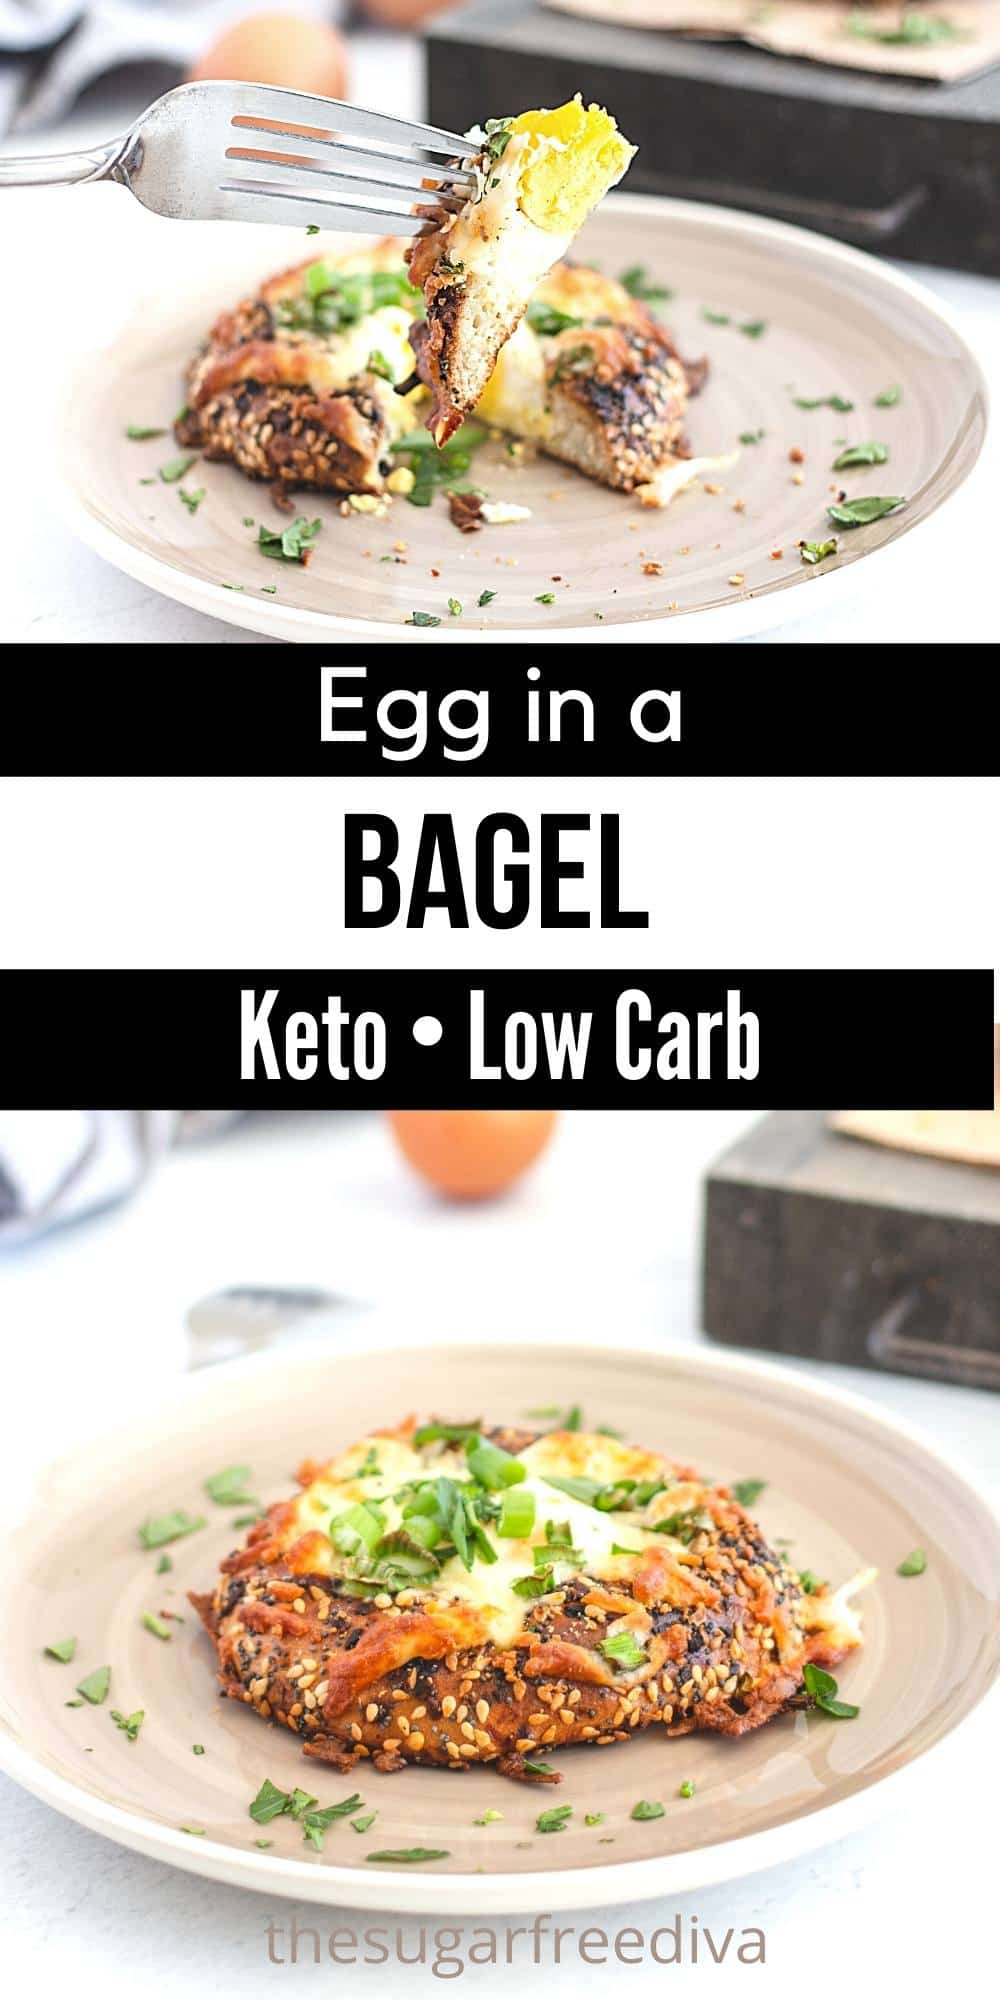 Keto Low Carb Egg in a Bagel